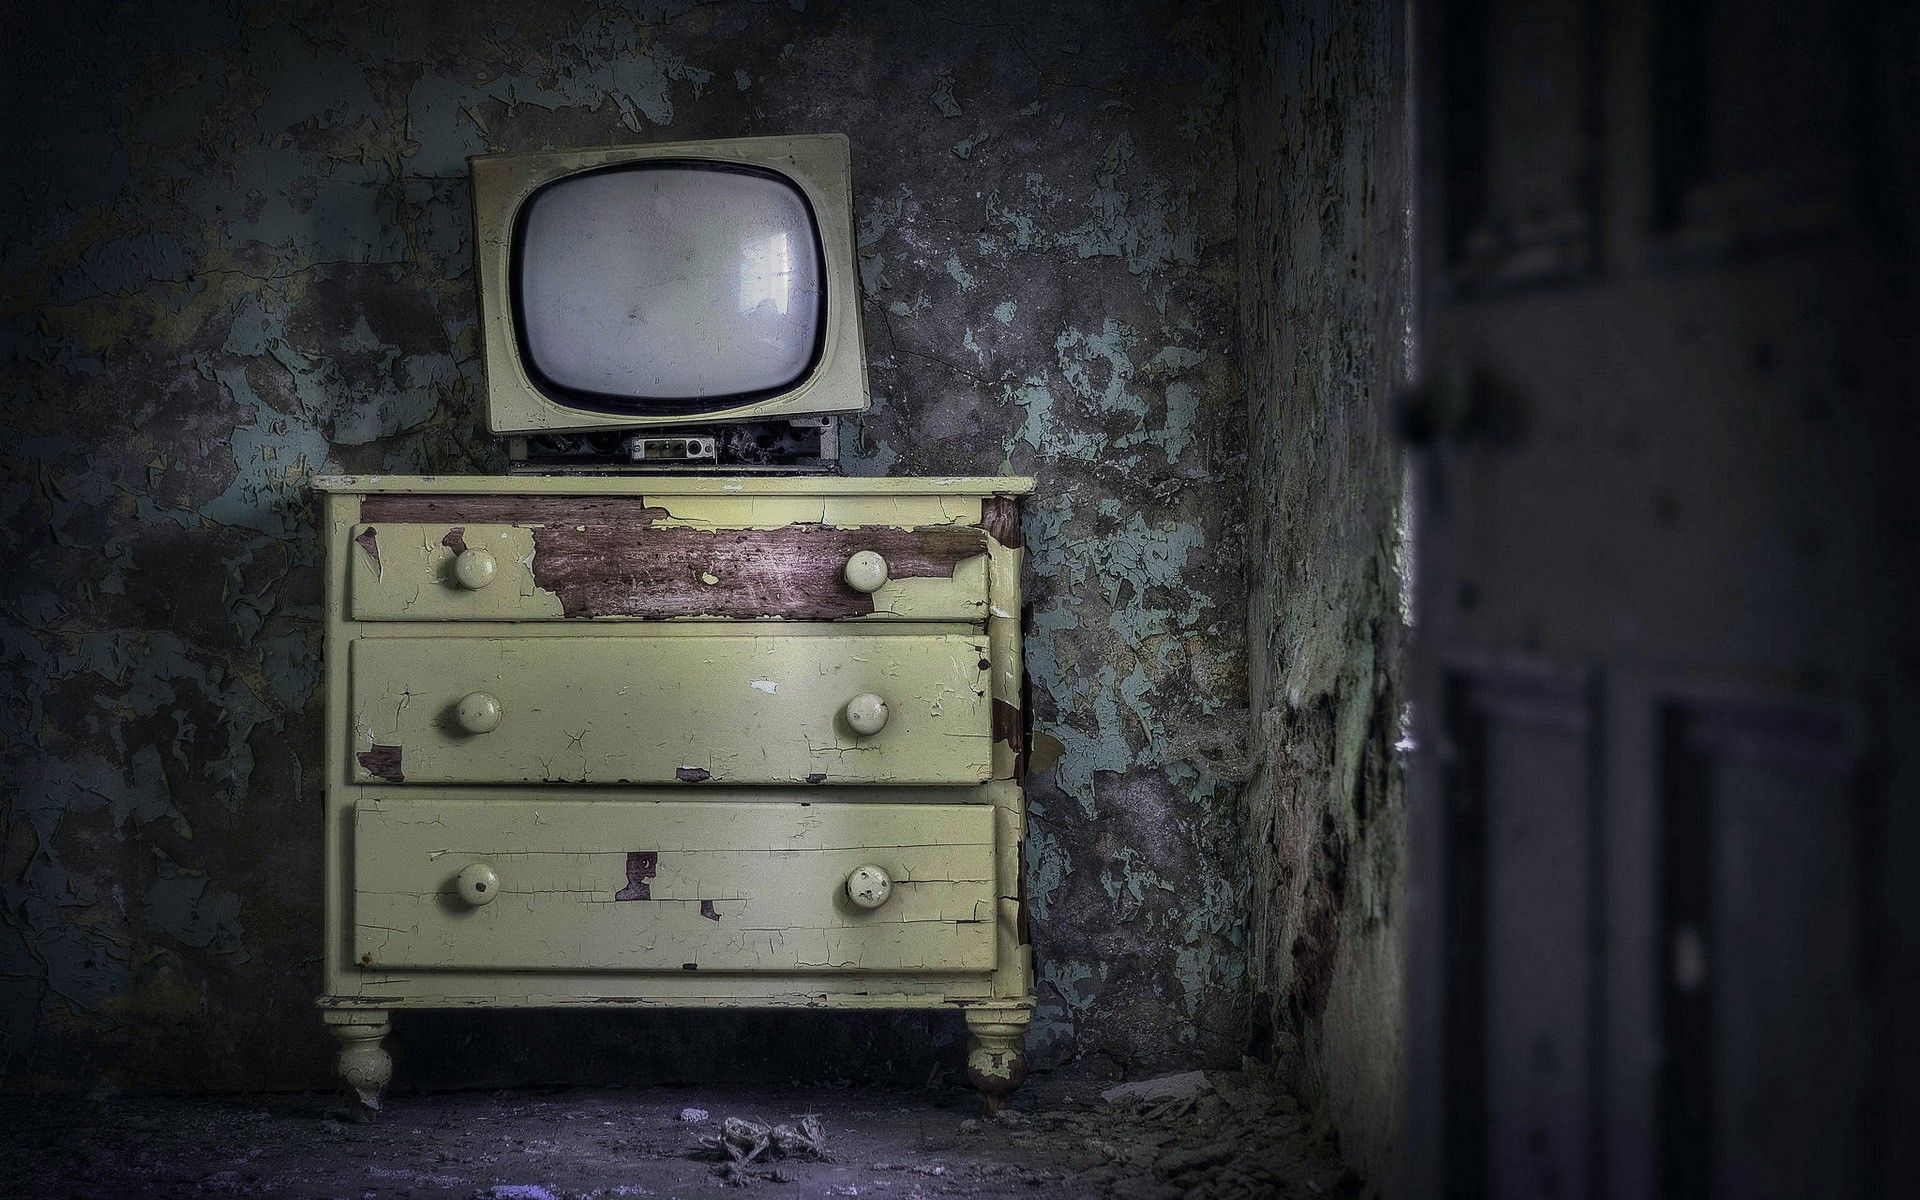 1920x1200 Old Vintage TV, HD Photography, 4k Wallpapers, Images, Backgrounds ...